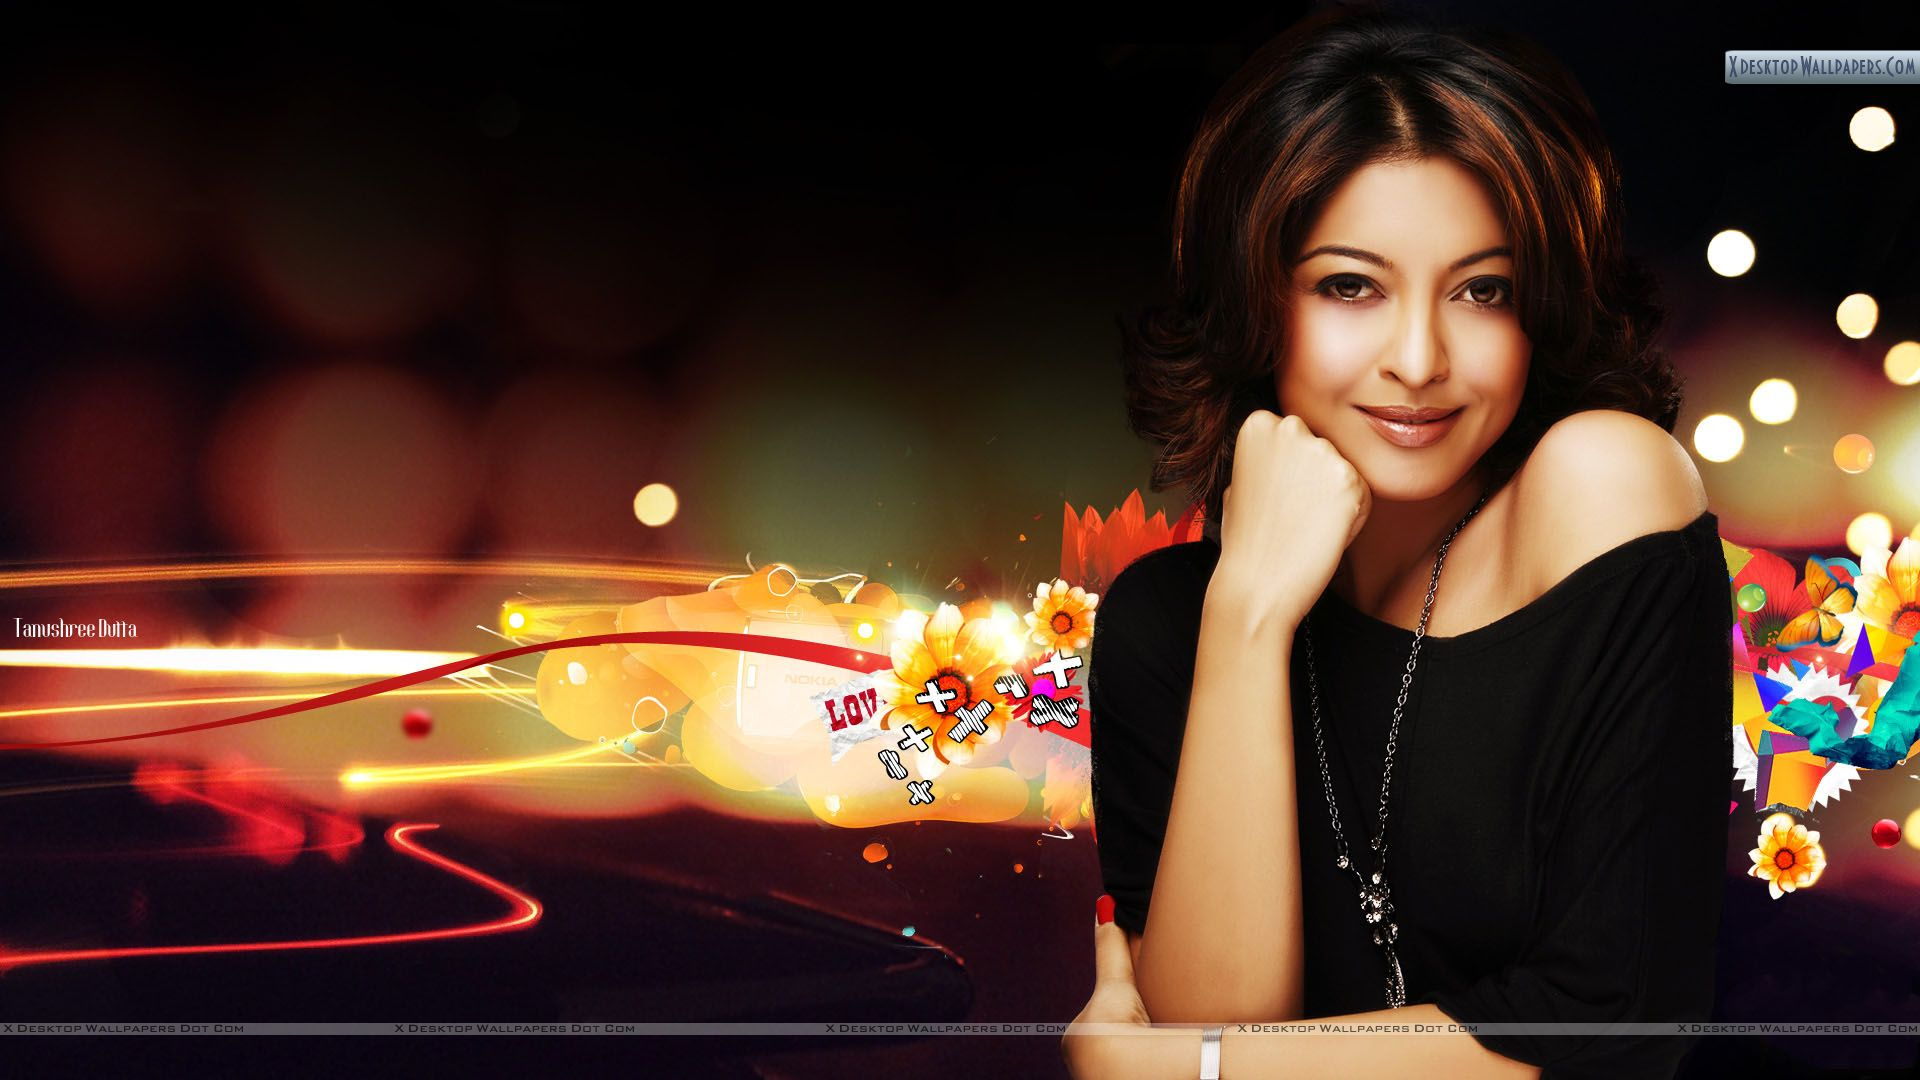 Tanushree Dutta Wallpapers Photos Images In Hd